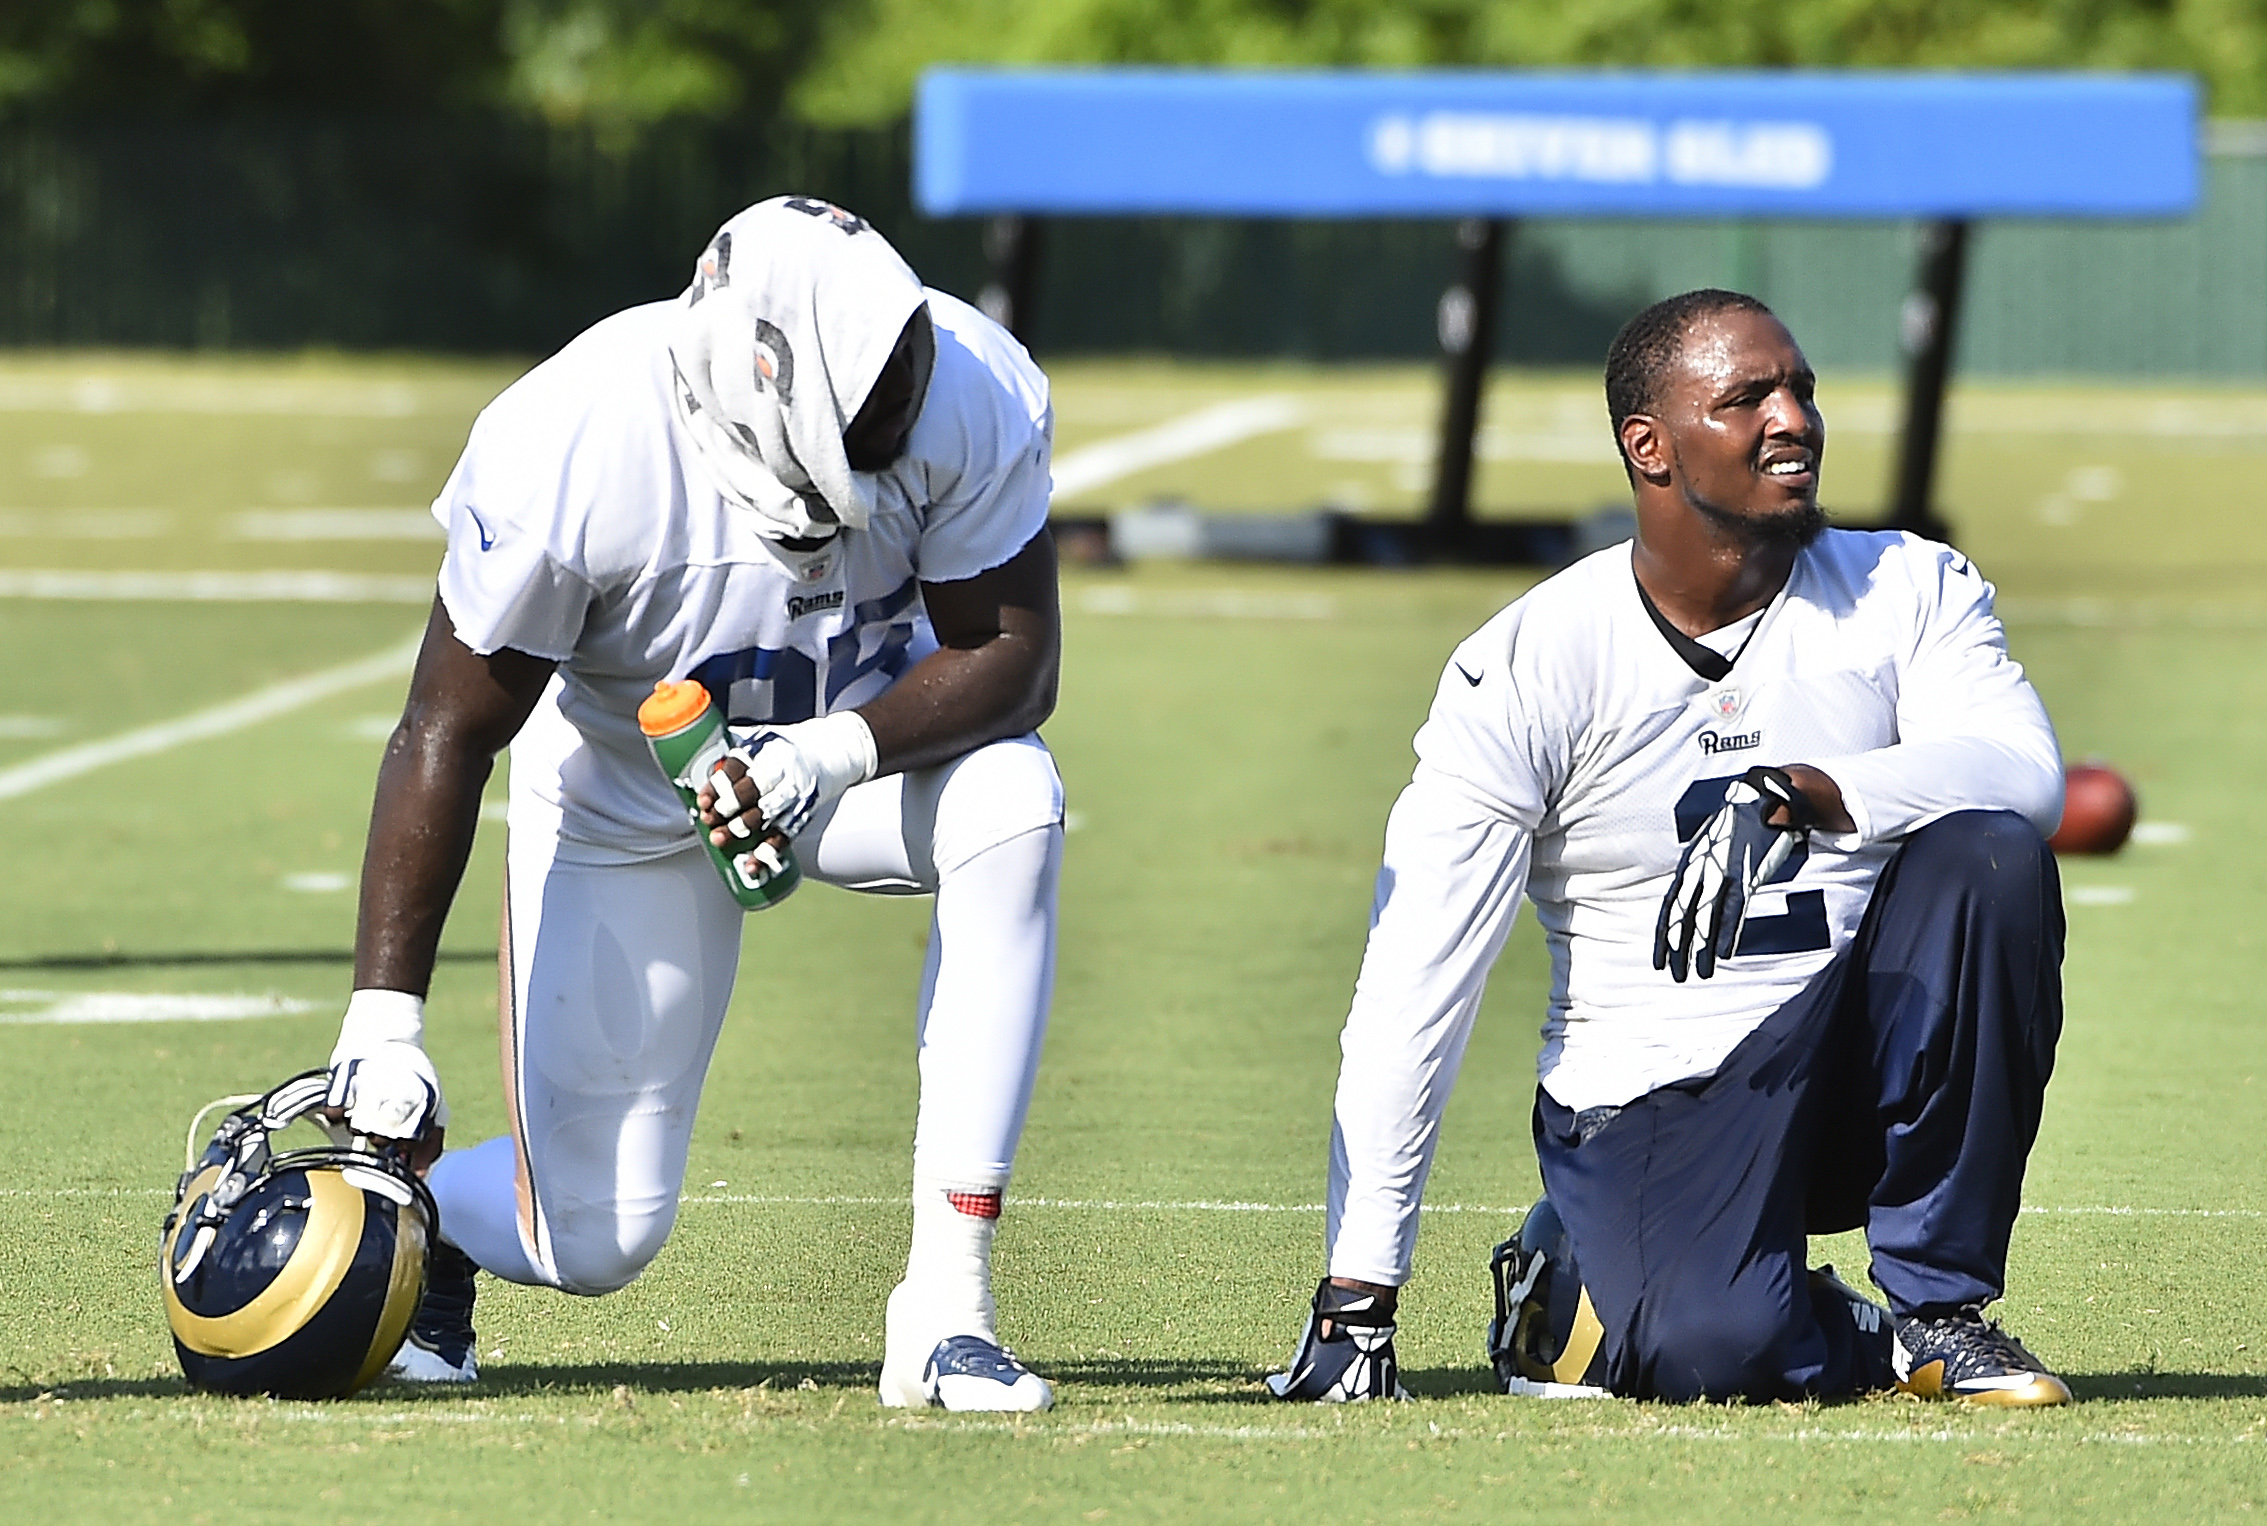 Los Angeles Rams DEs William Hayes and Robert Quinn